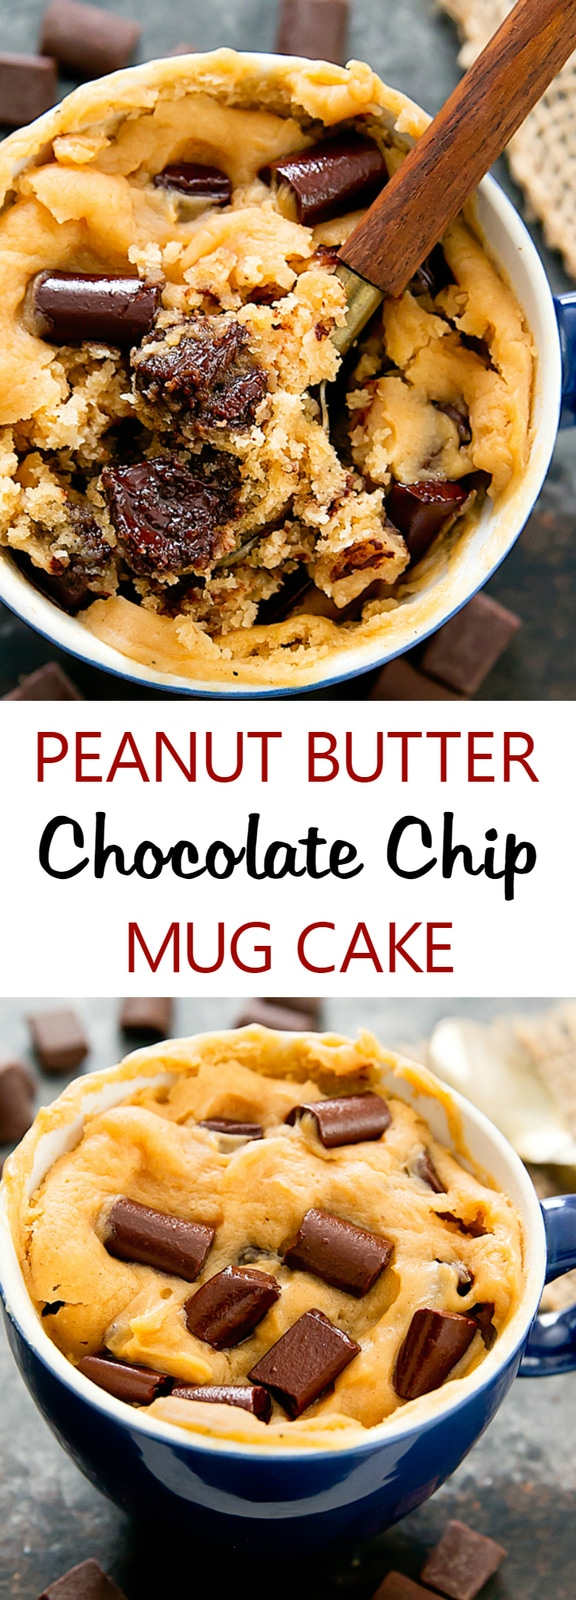 Peanut Butter Chocolate Chip Mug Cake - Kirbie's Cravings